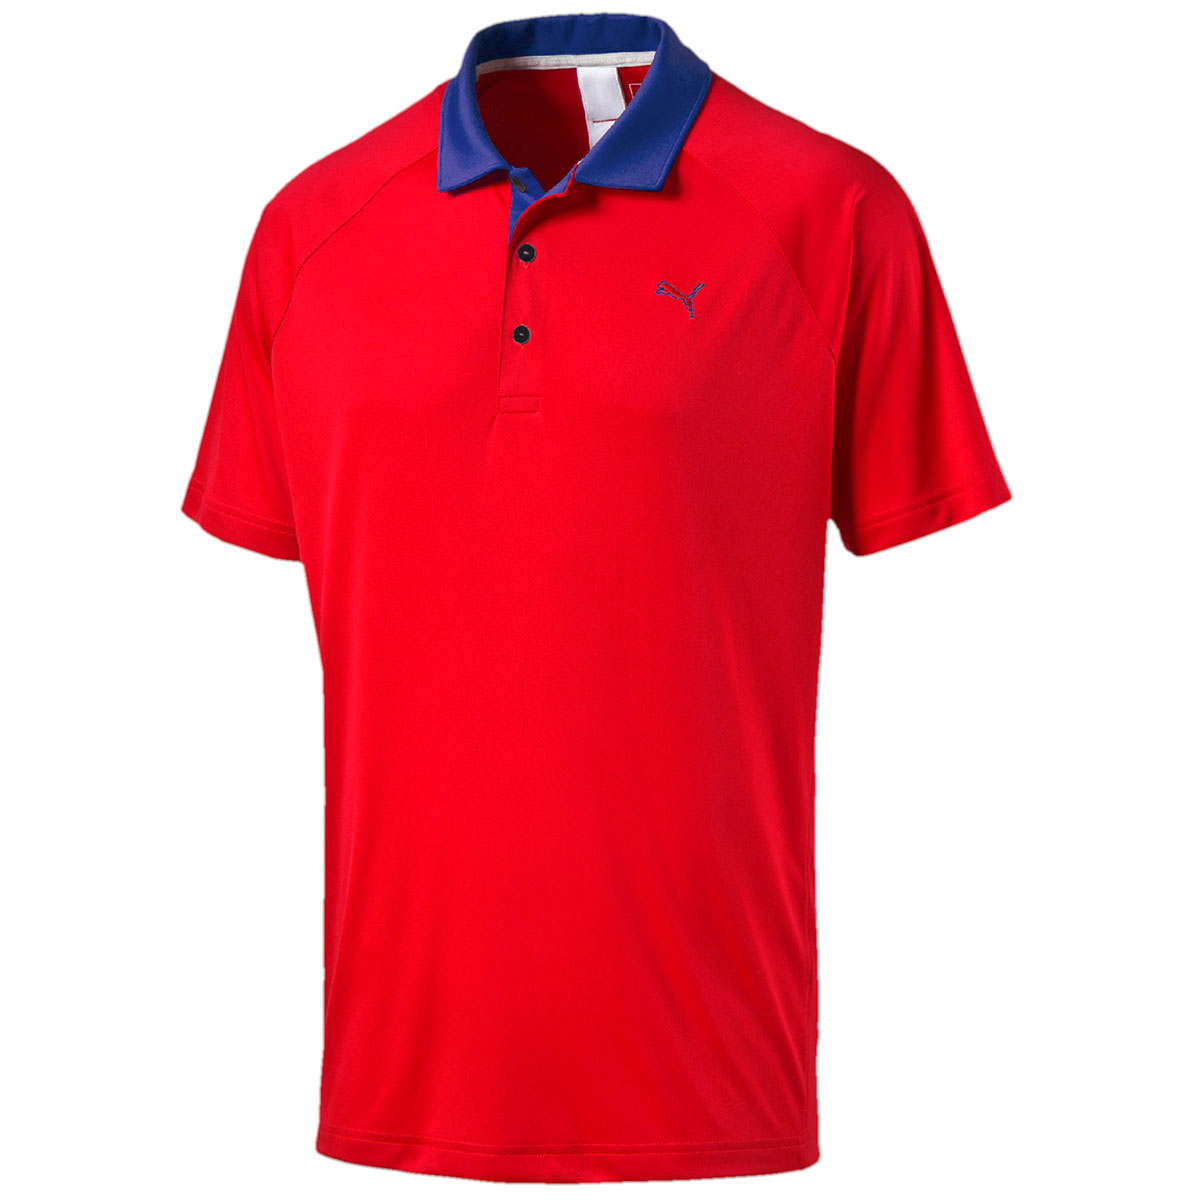 Puma golf 2016 mens players performance tech polo shirt for Us polo shirts for mens